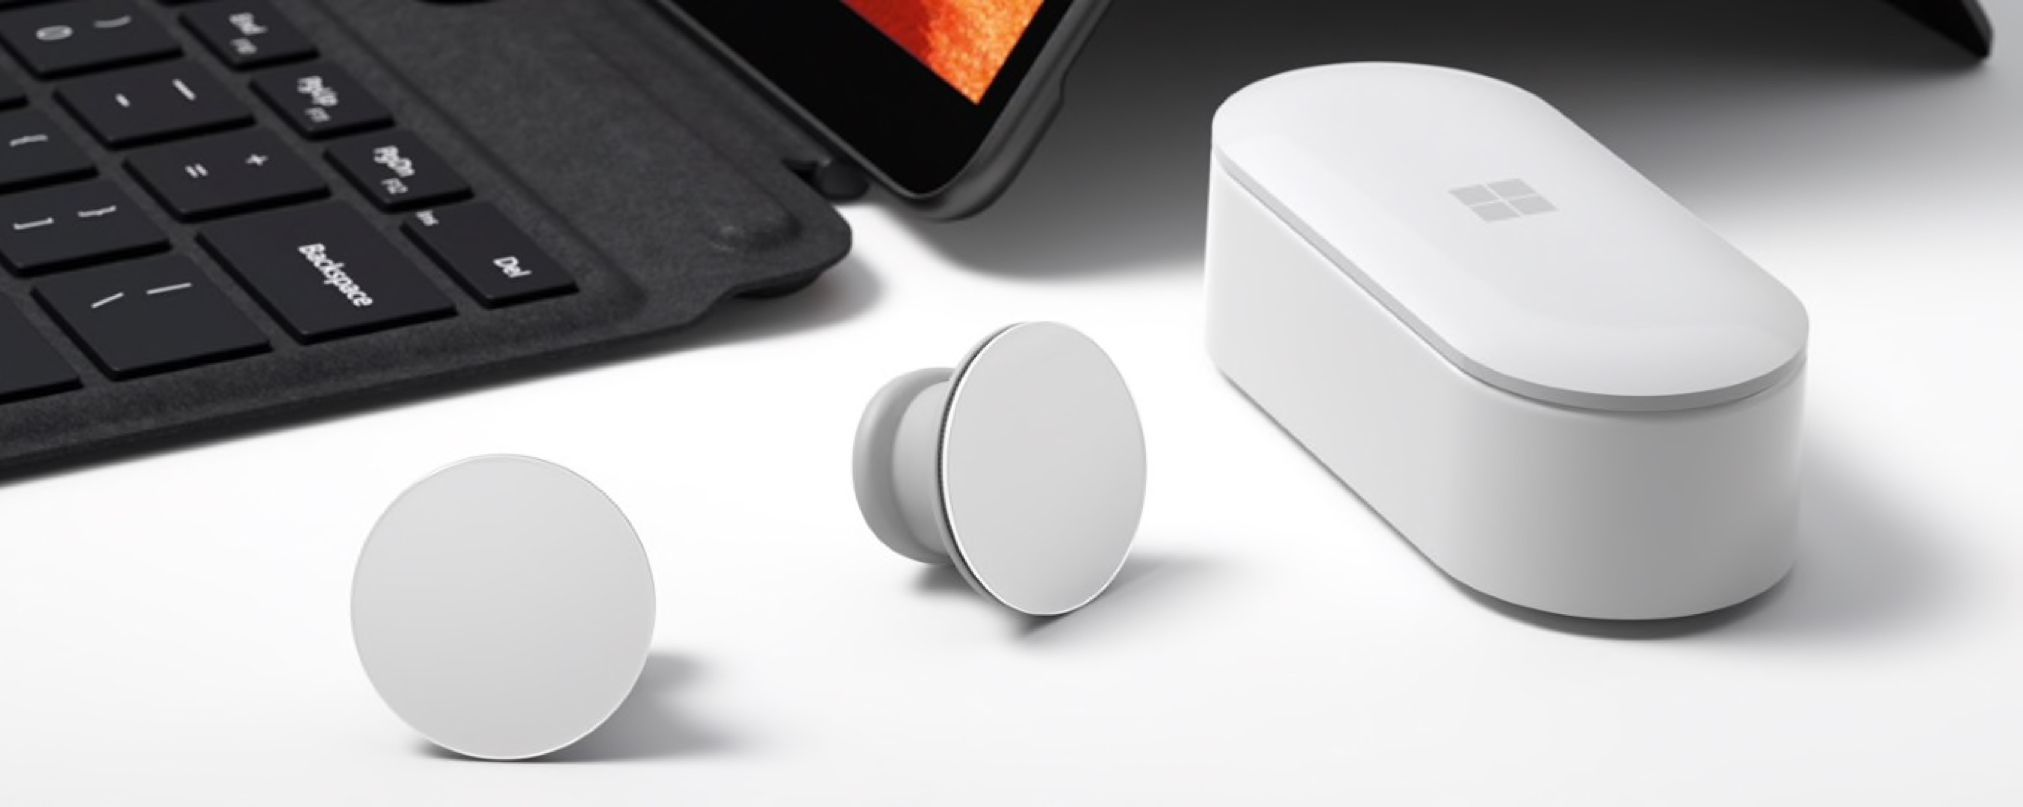 Microsoft's Surface Earbuds outside of case on a table.